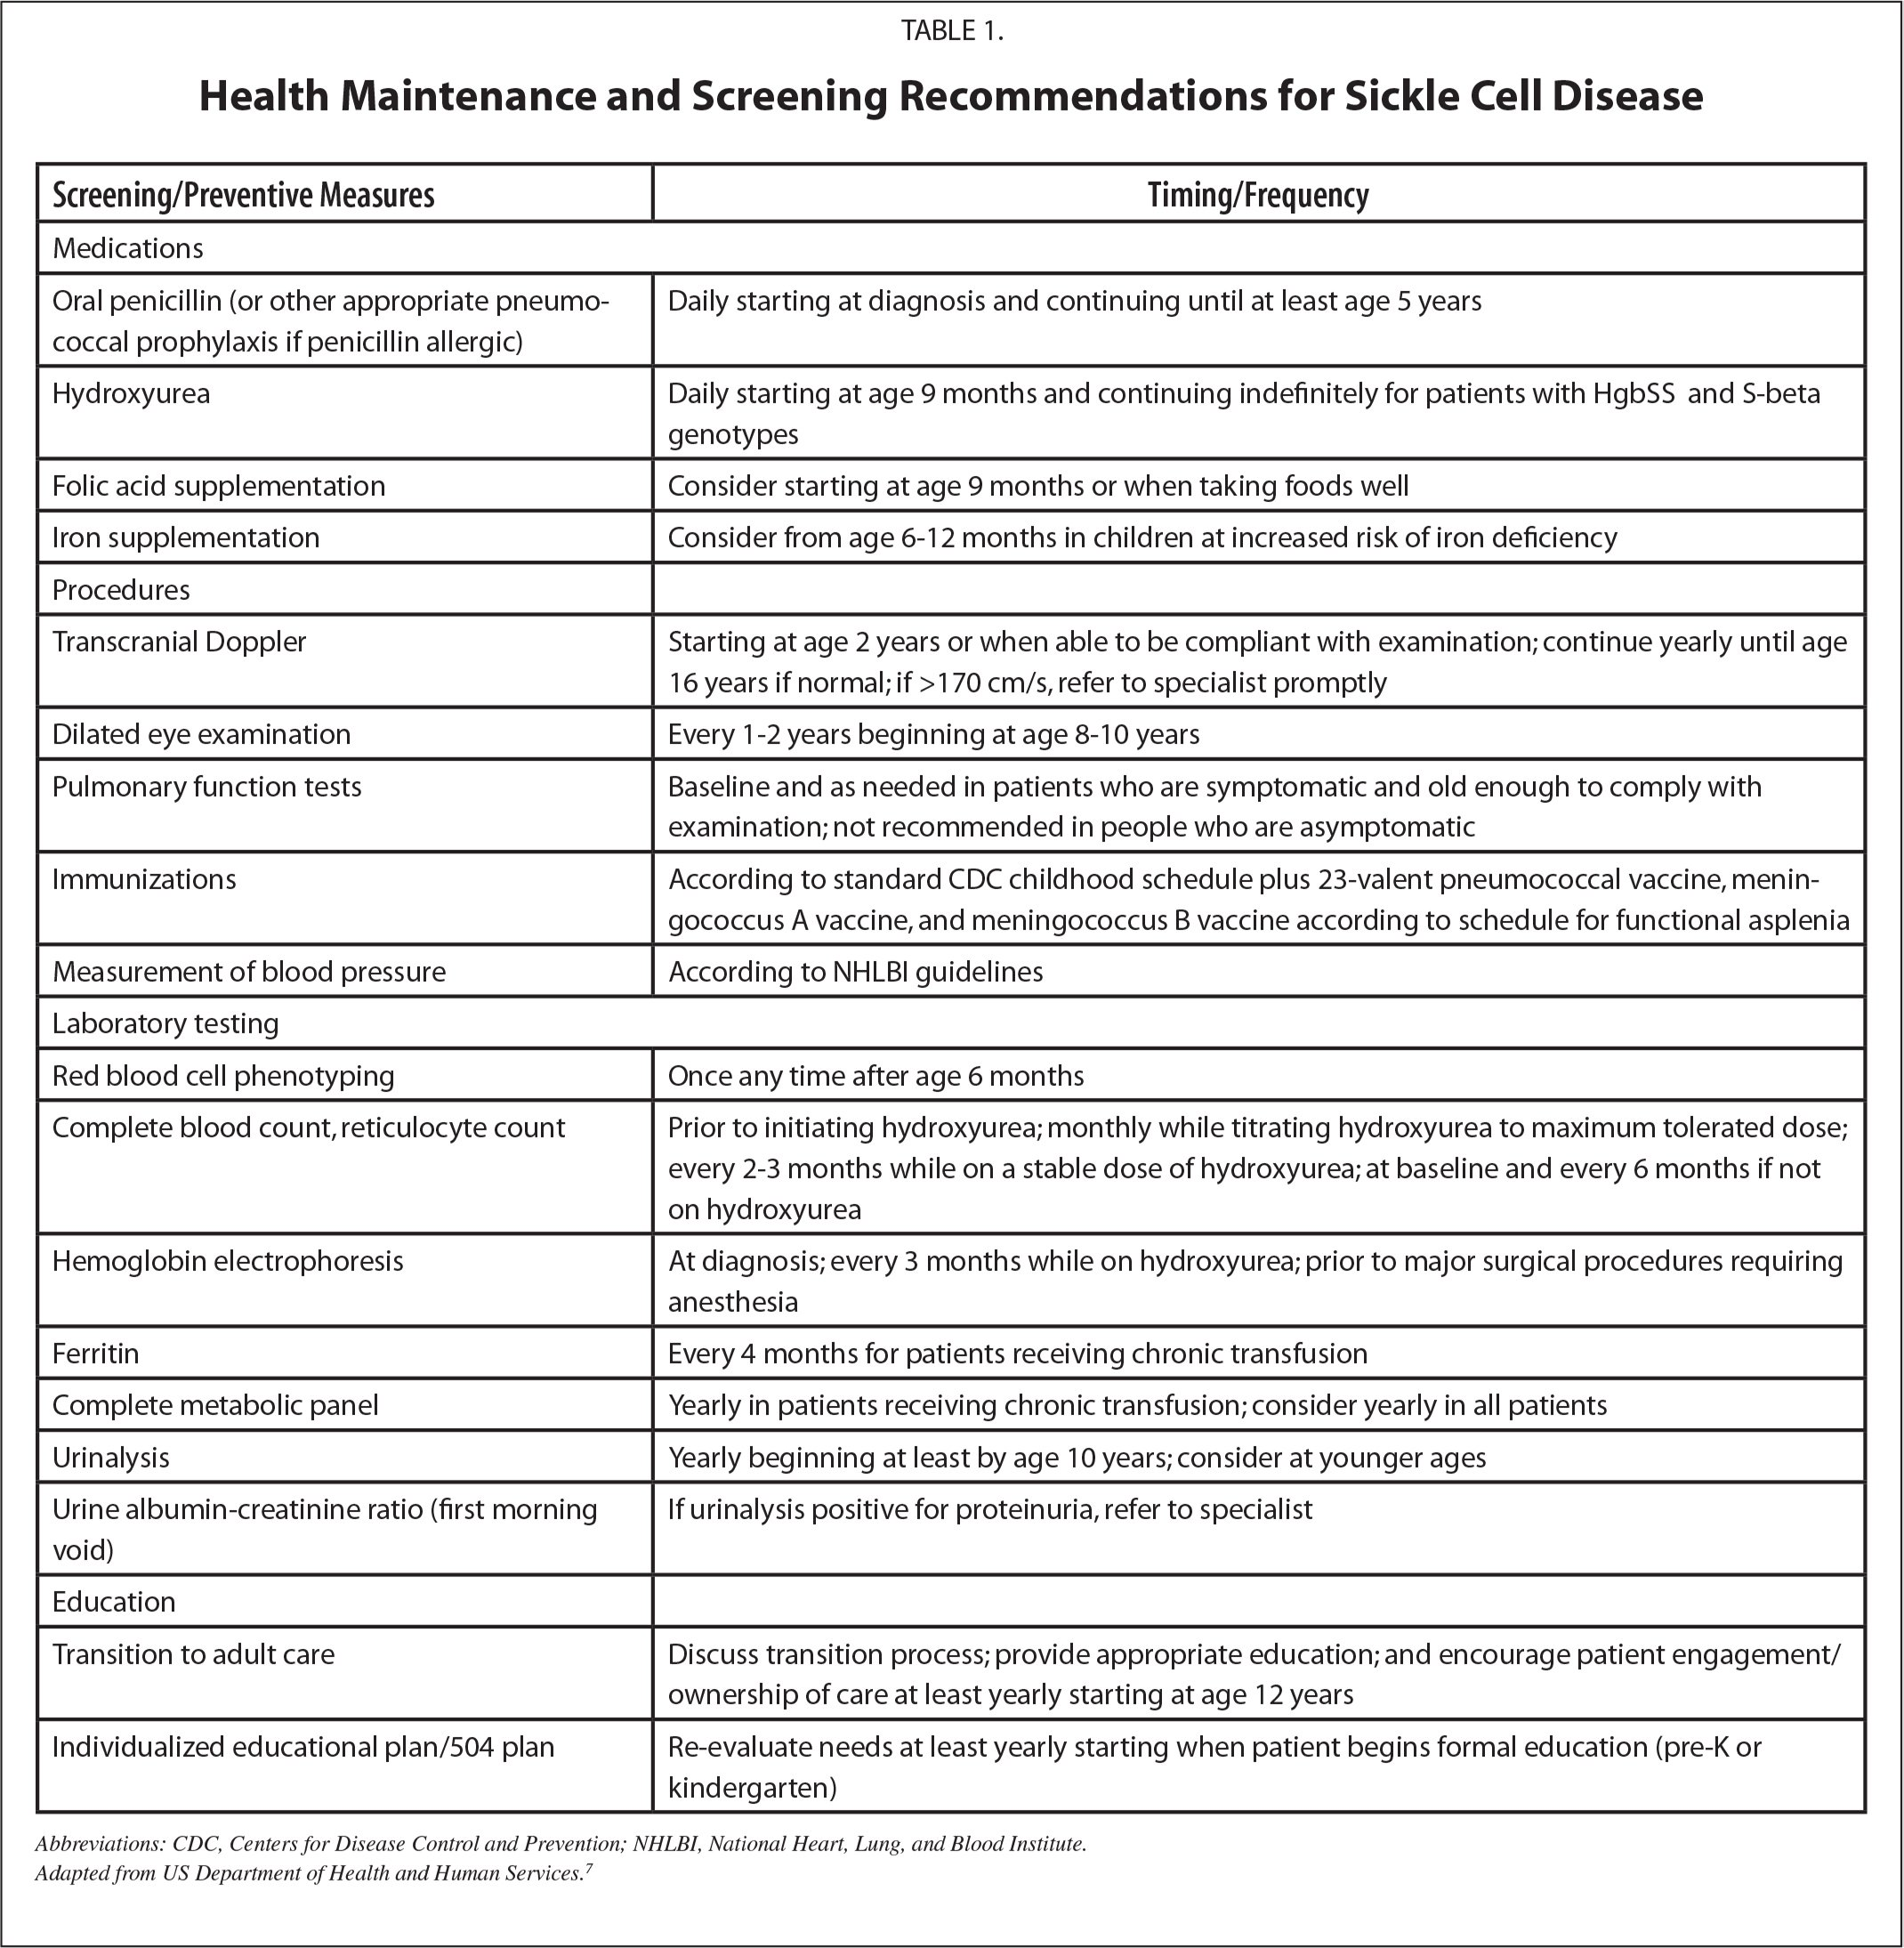 Health Maintenance and Screening Recommendations for Sickle Cell Disease